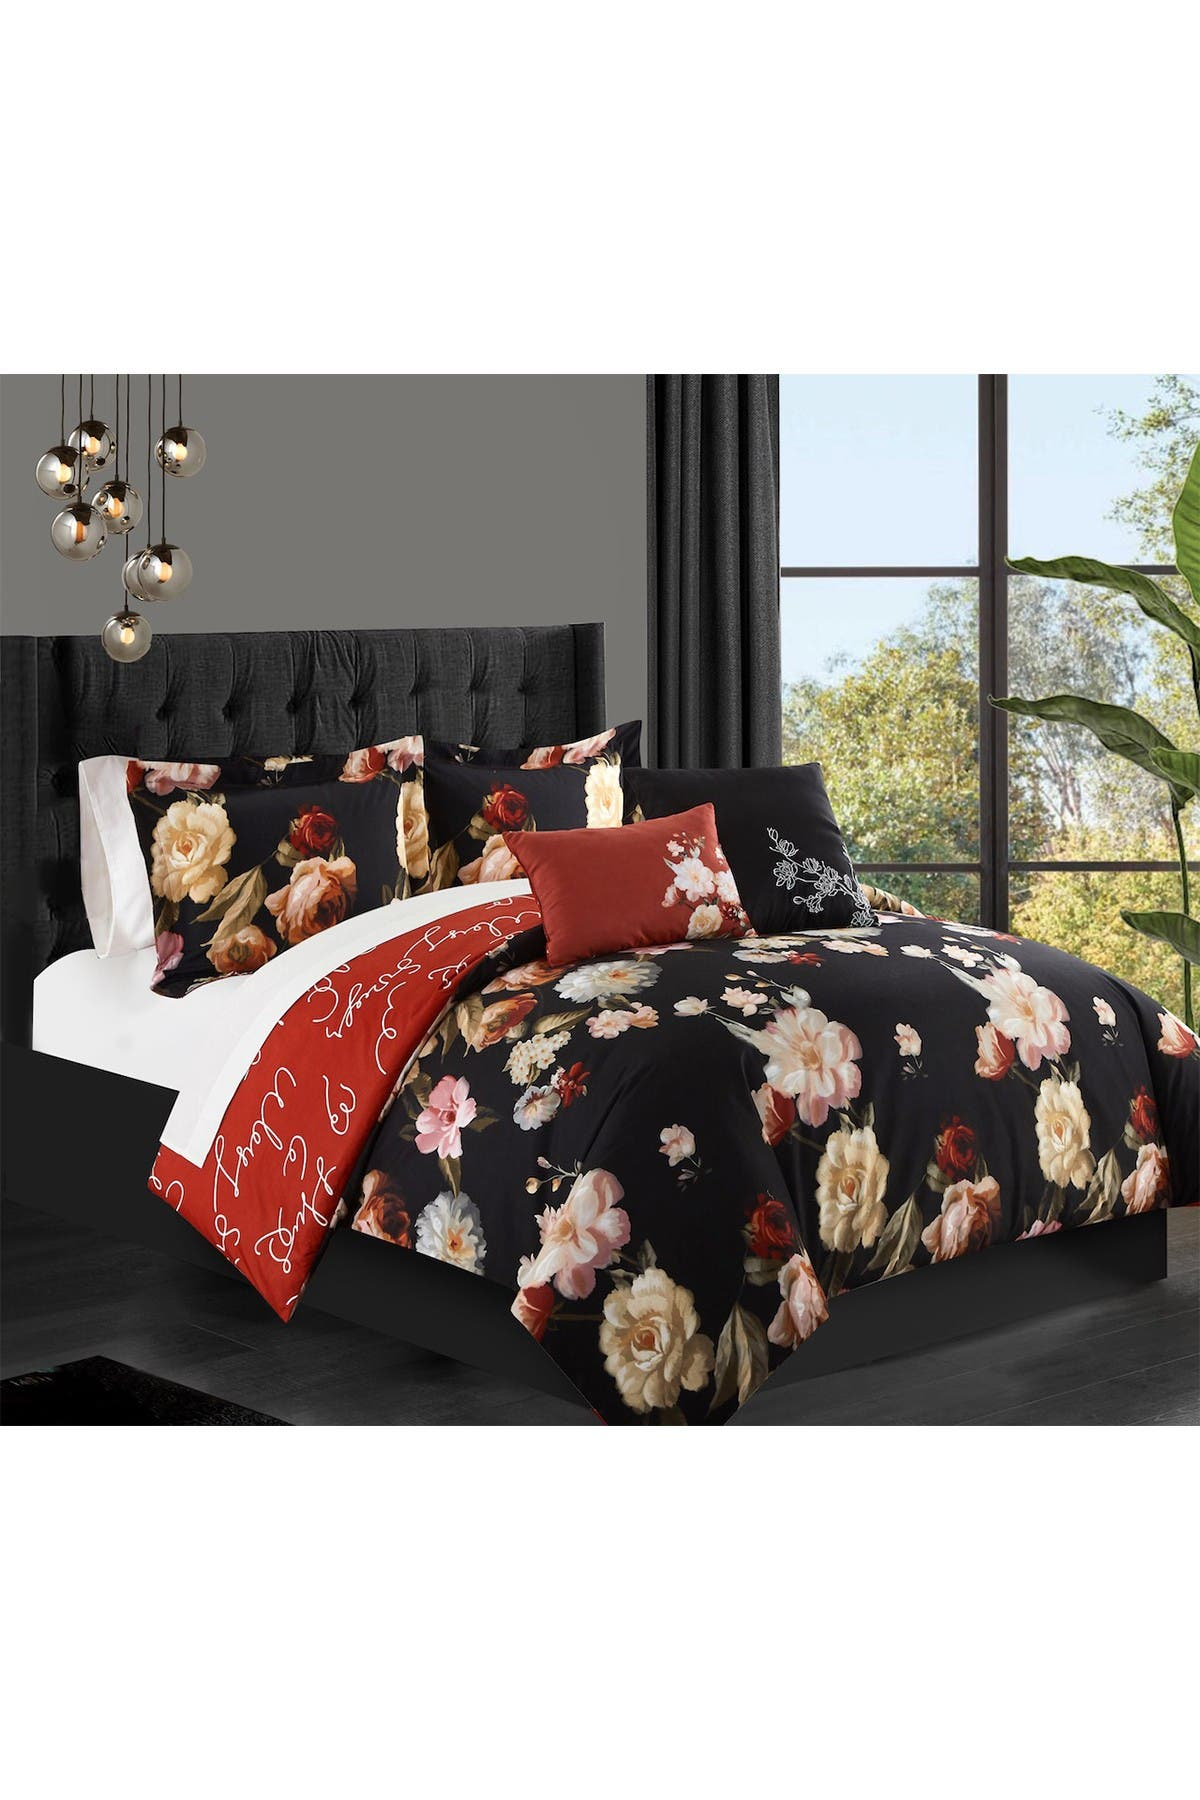 Image of Chic Home Bedding Edith Floral Print With Cursive Script On The Reverse Twin Comforter Set - Black - 4-Piece Set